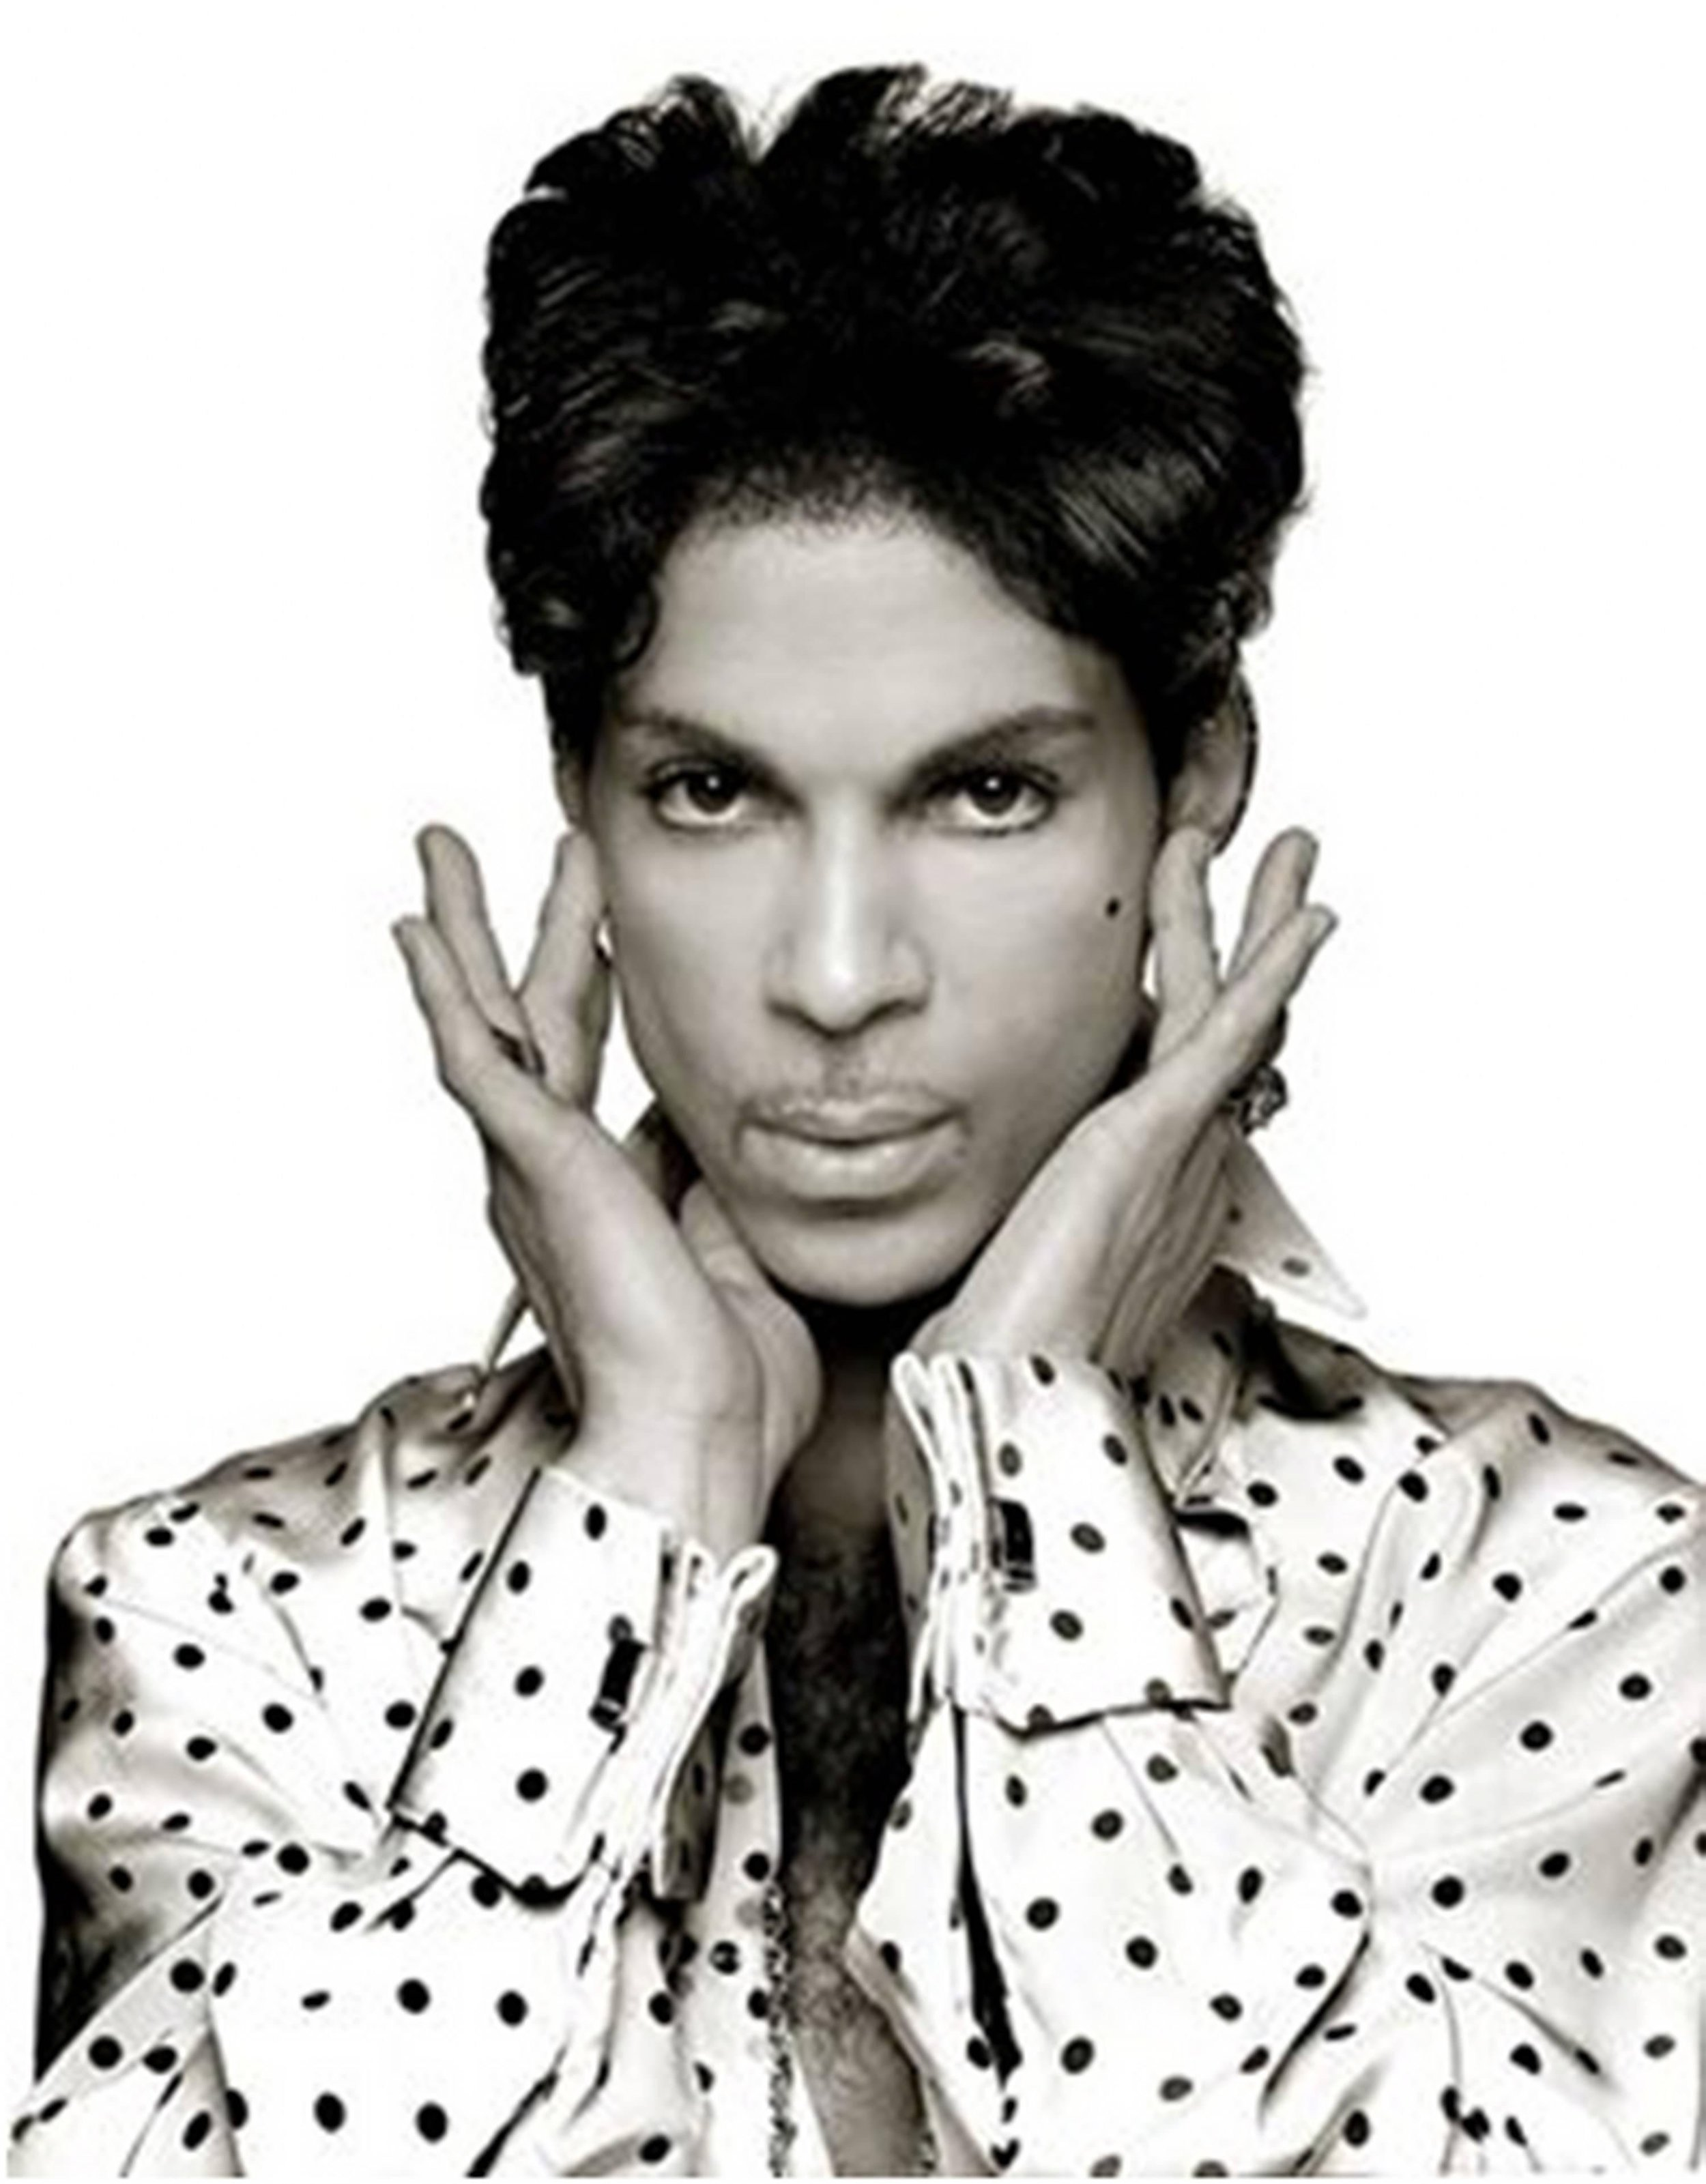 Prince, Cleveland 2004 by Albert Watson  Ed 25, archival pigment print. Available in 3 sizes.  Price on request.